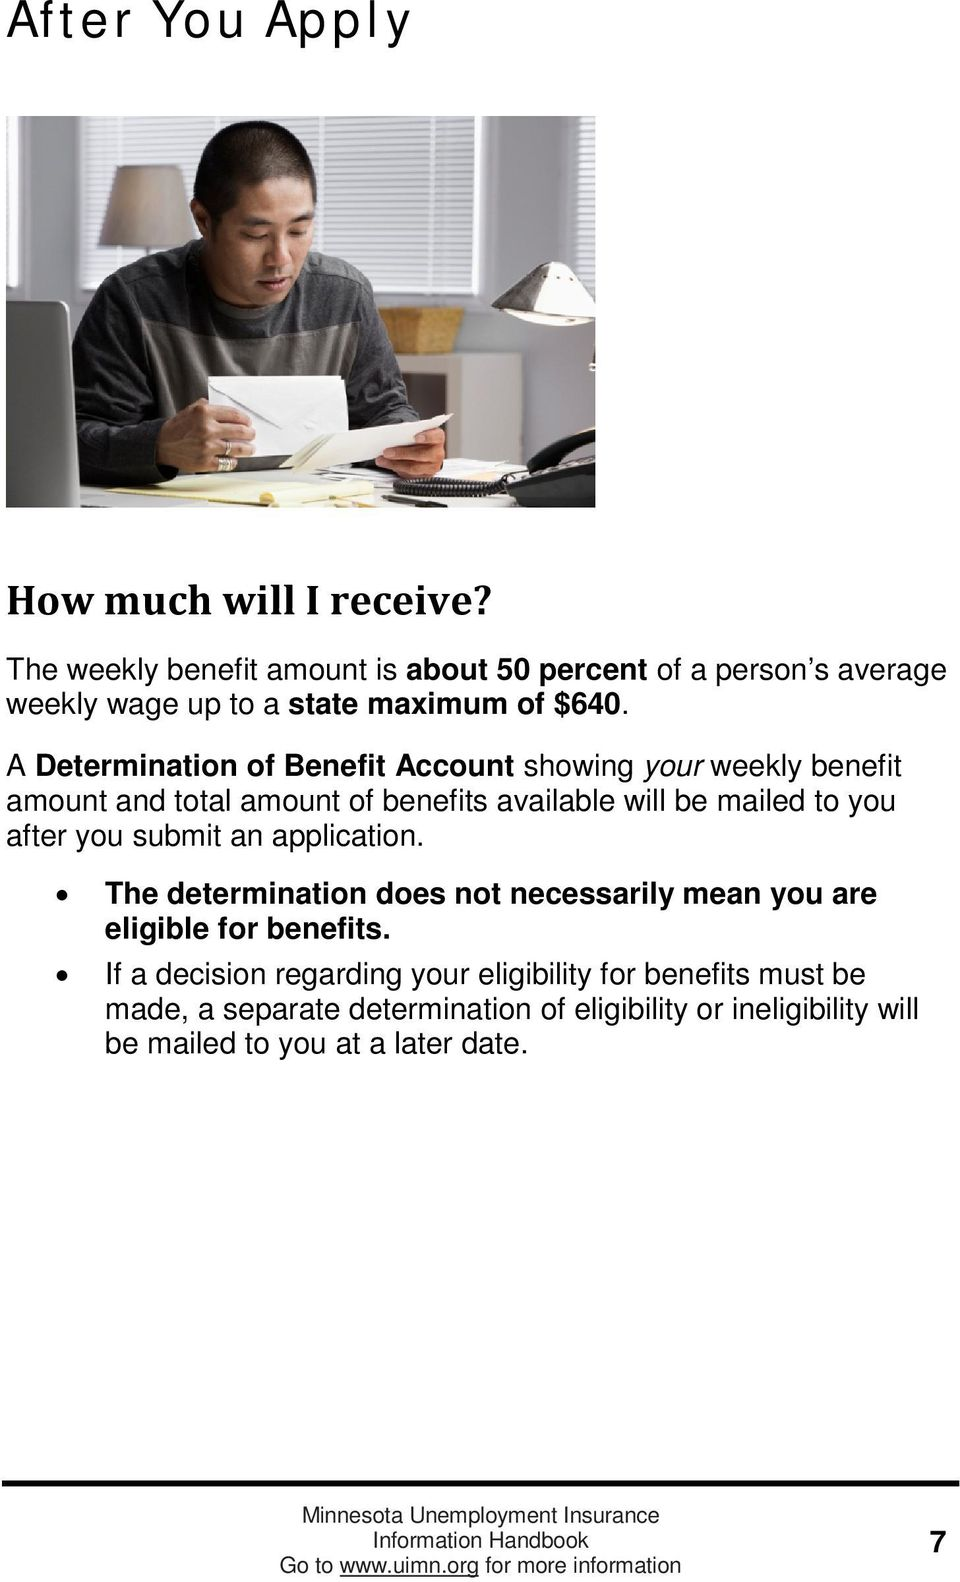 A Determination of Benefit Account showing your weekly benefit amount and total amount of benefits available will be mailed to you after